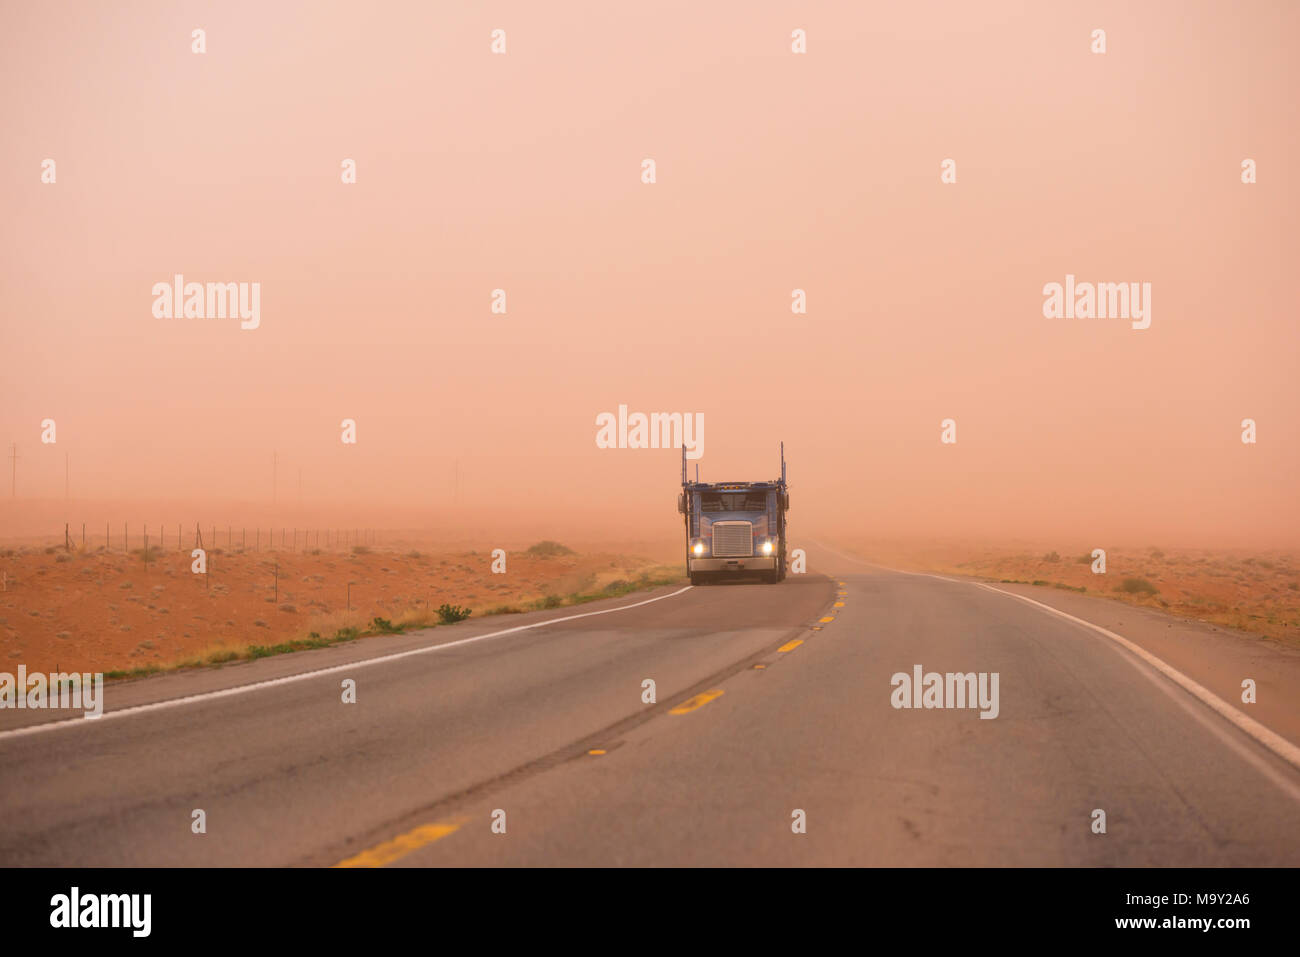 Big rig American bonnet car hauler semi truck with turn on headlight running on the road with very poor visibility in the red sand dust during huge sa Stock Photo